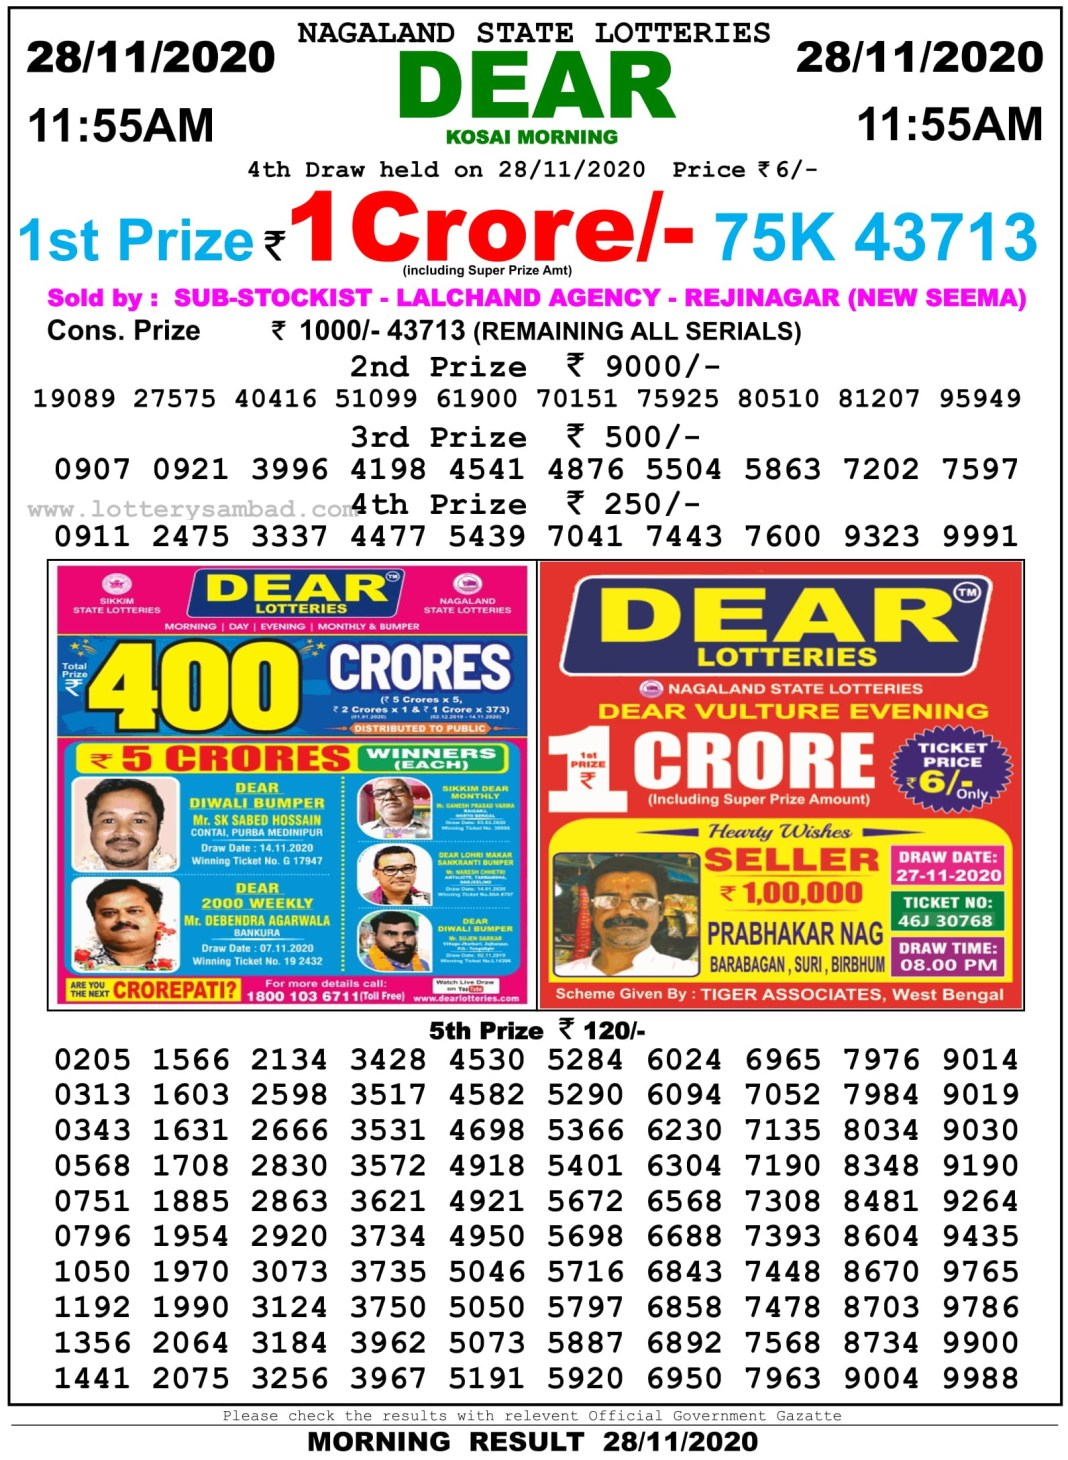 Sikkim State Lottery Result 11.55 AM 28.11.2020